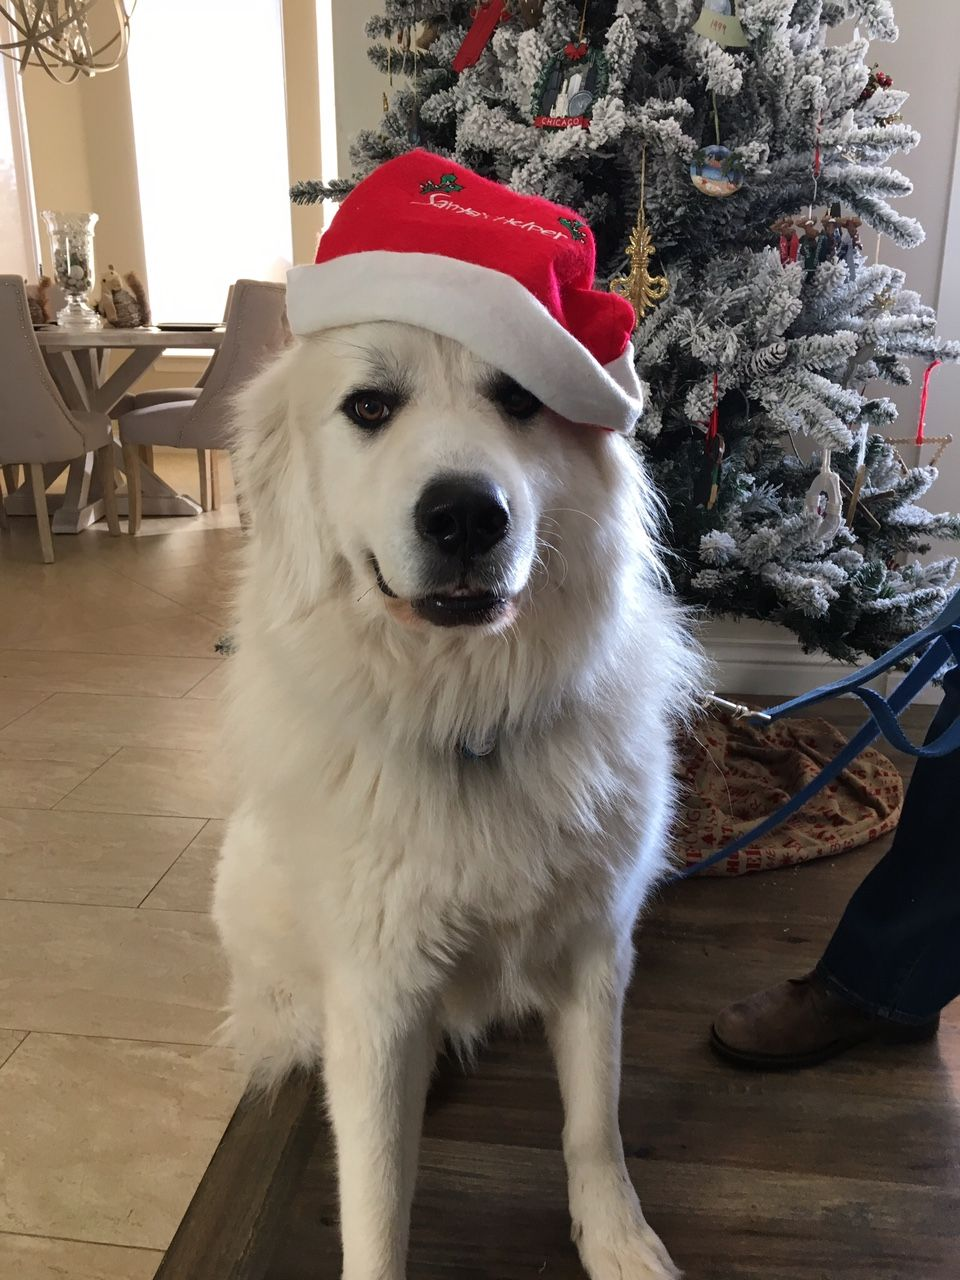 Great Pyrenees dog for Adoption in Evergreen, CO. ADN